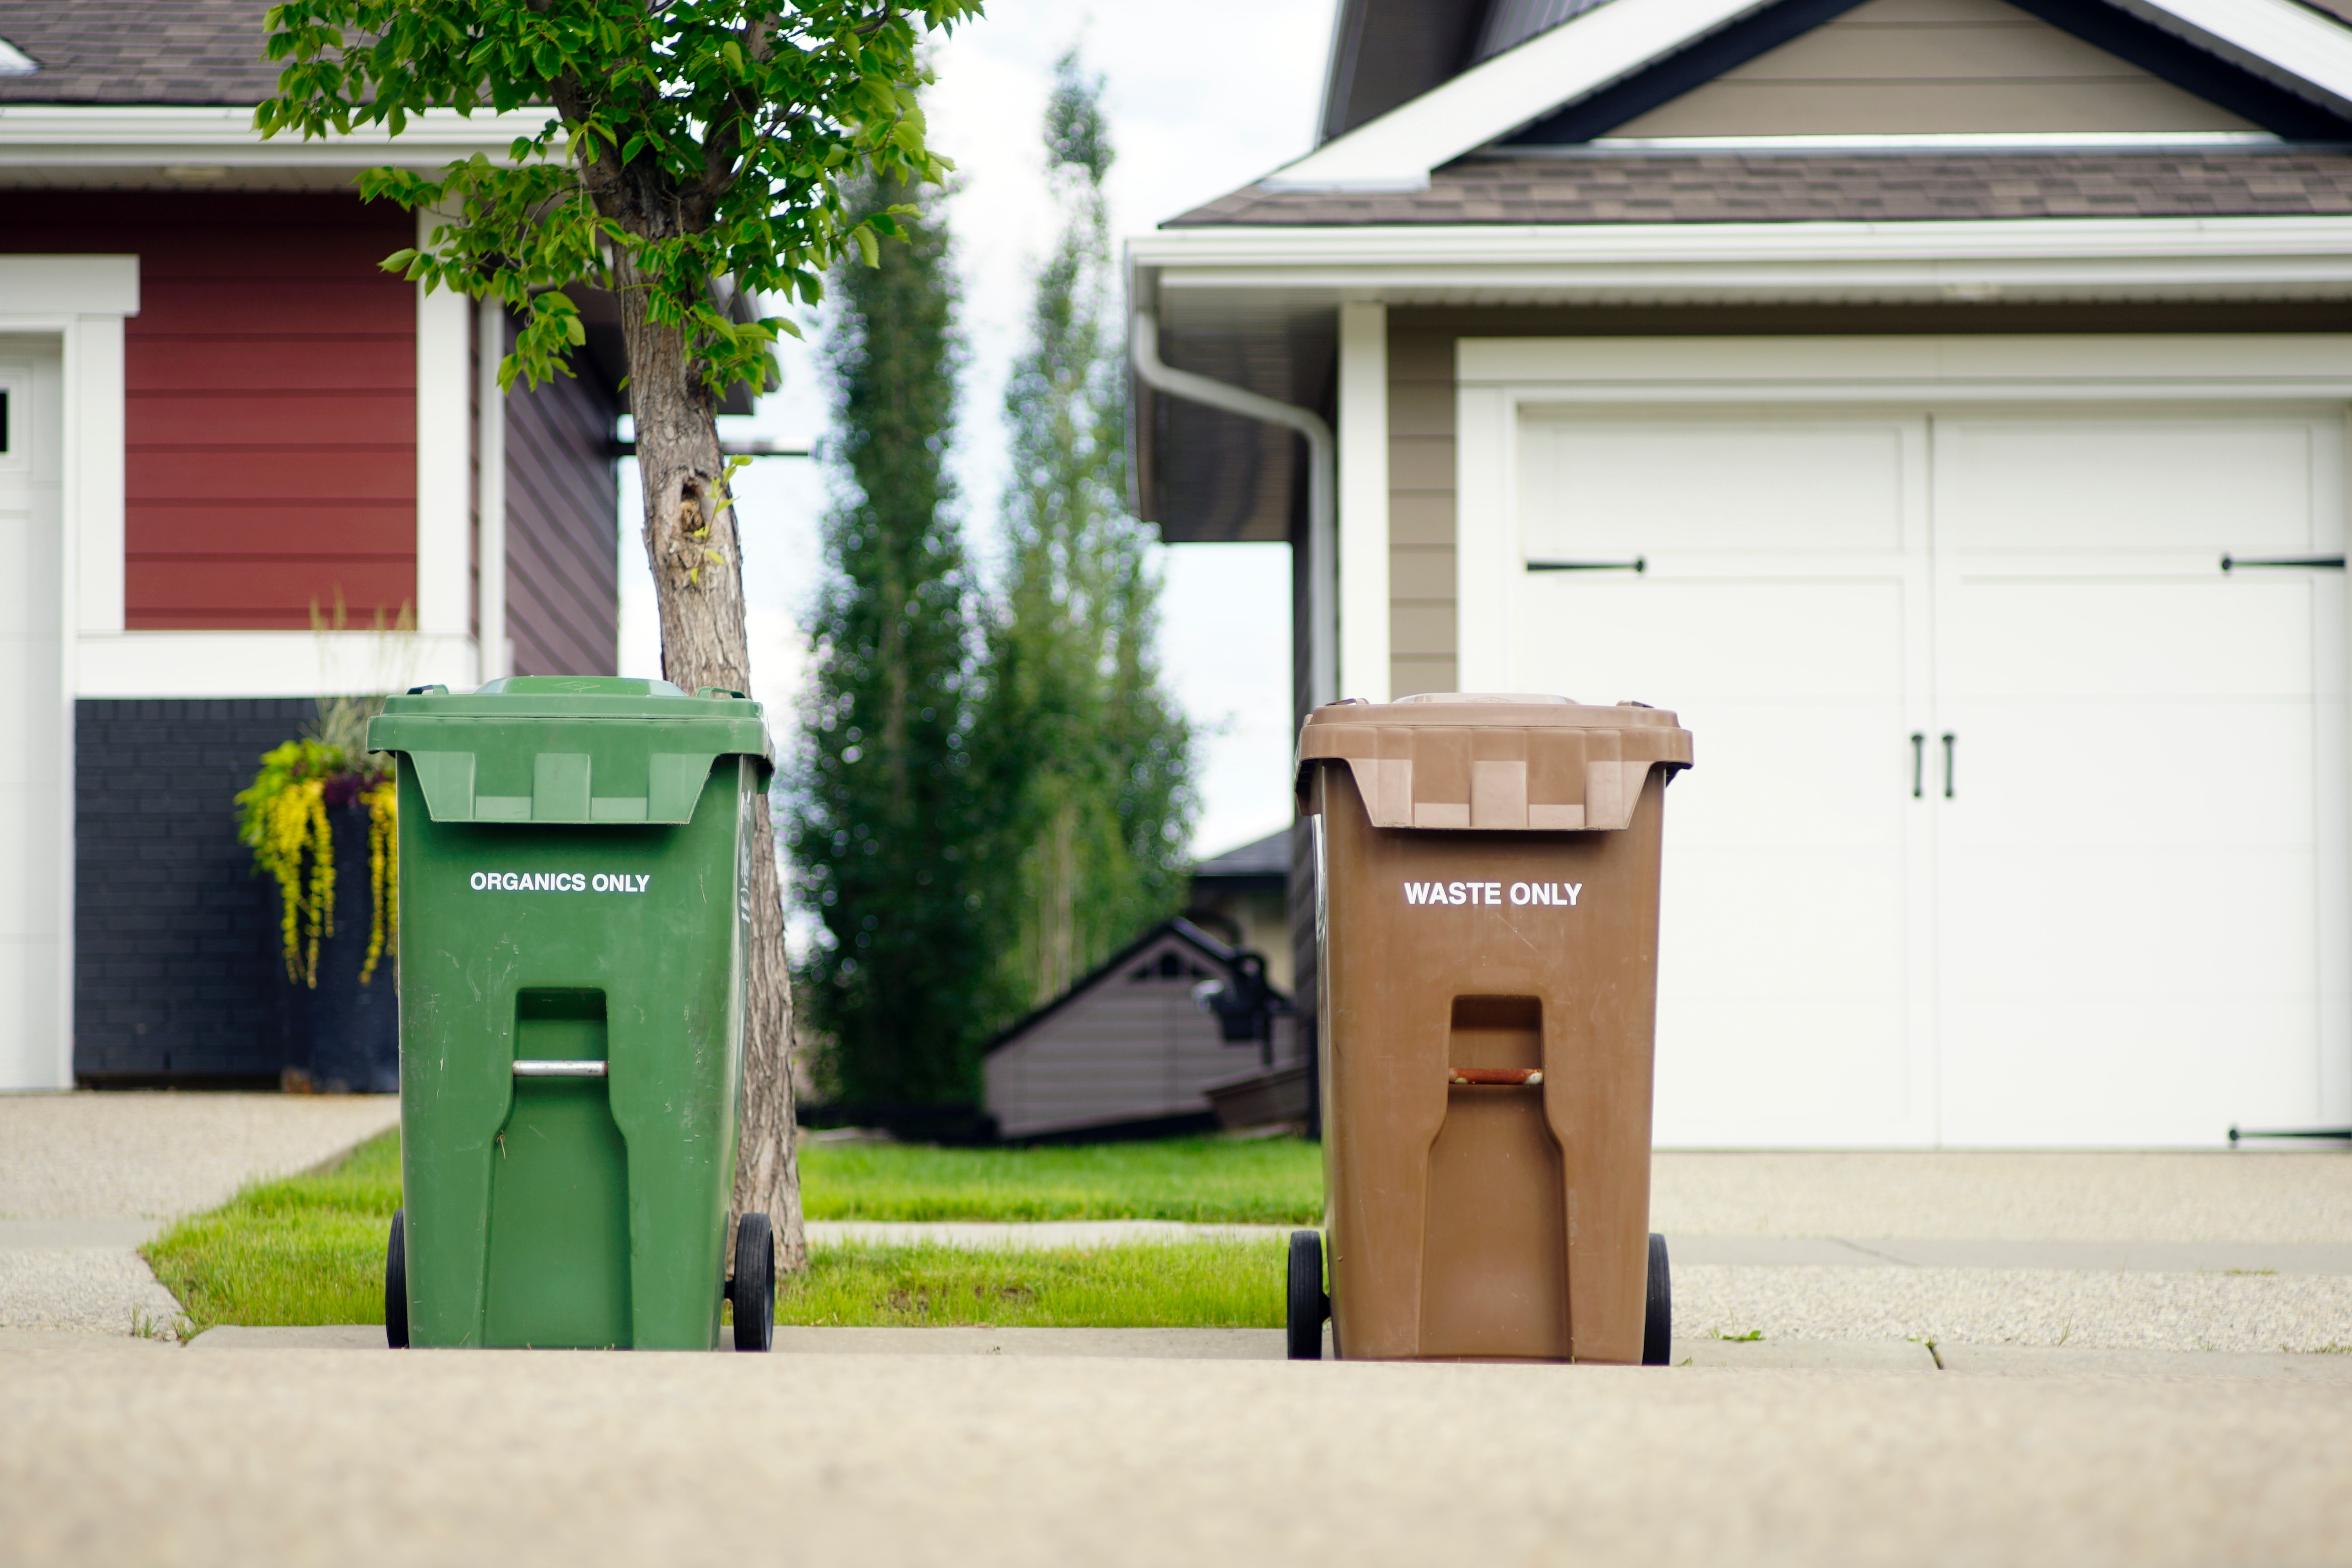 Reduce, reuse, and recycle: The realities of recycling